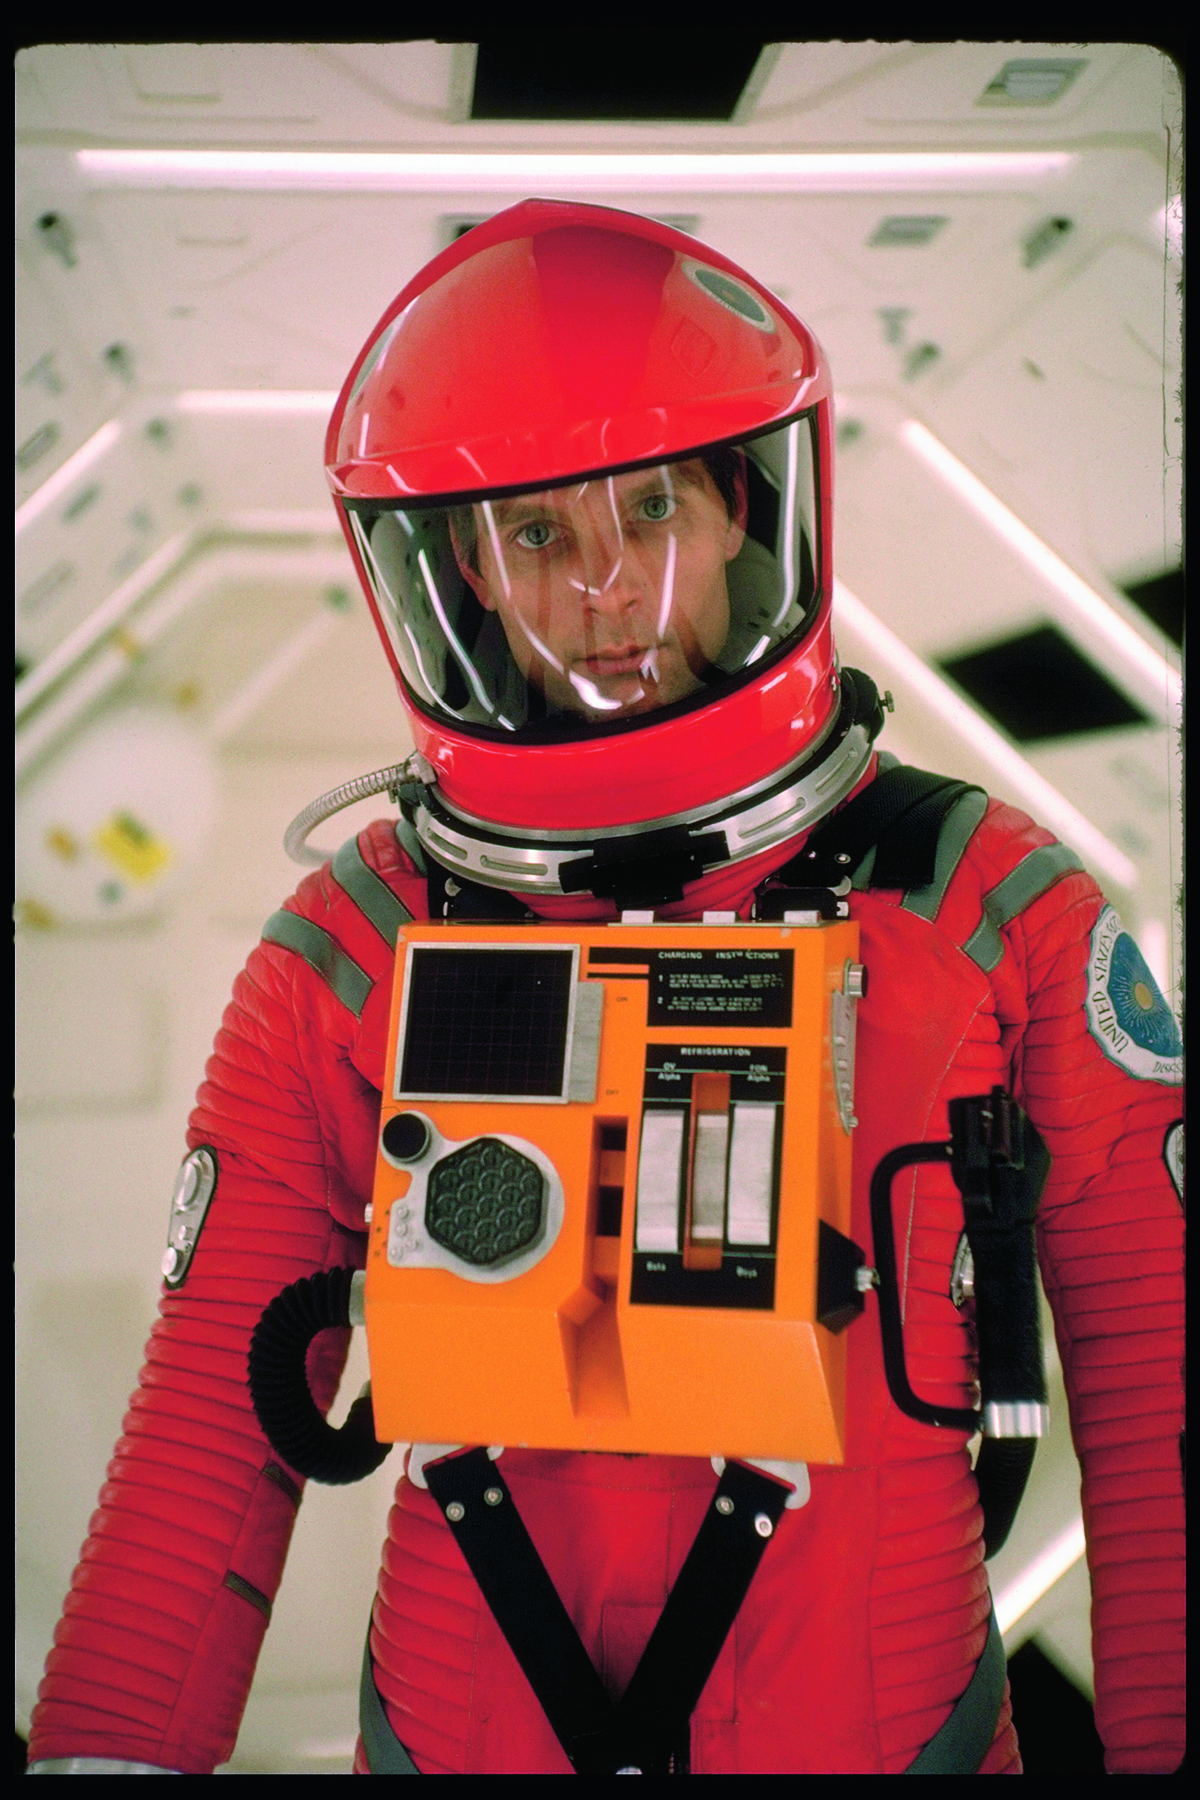 Actor Keir Dullea in space suit in scene from motion picture 2001: A Space Odyssey. (Photo by Dmitri Kessel/The LIFE Picture Collection/Getty Images)